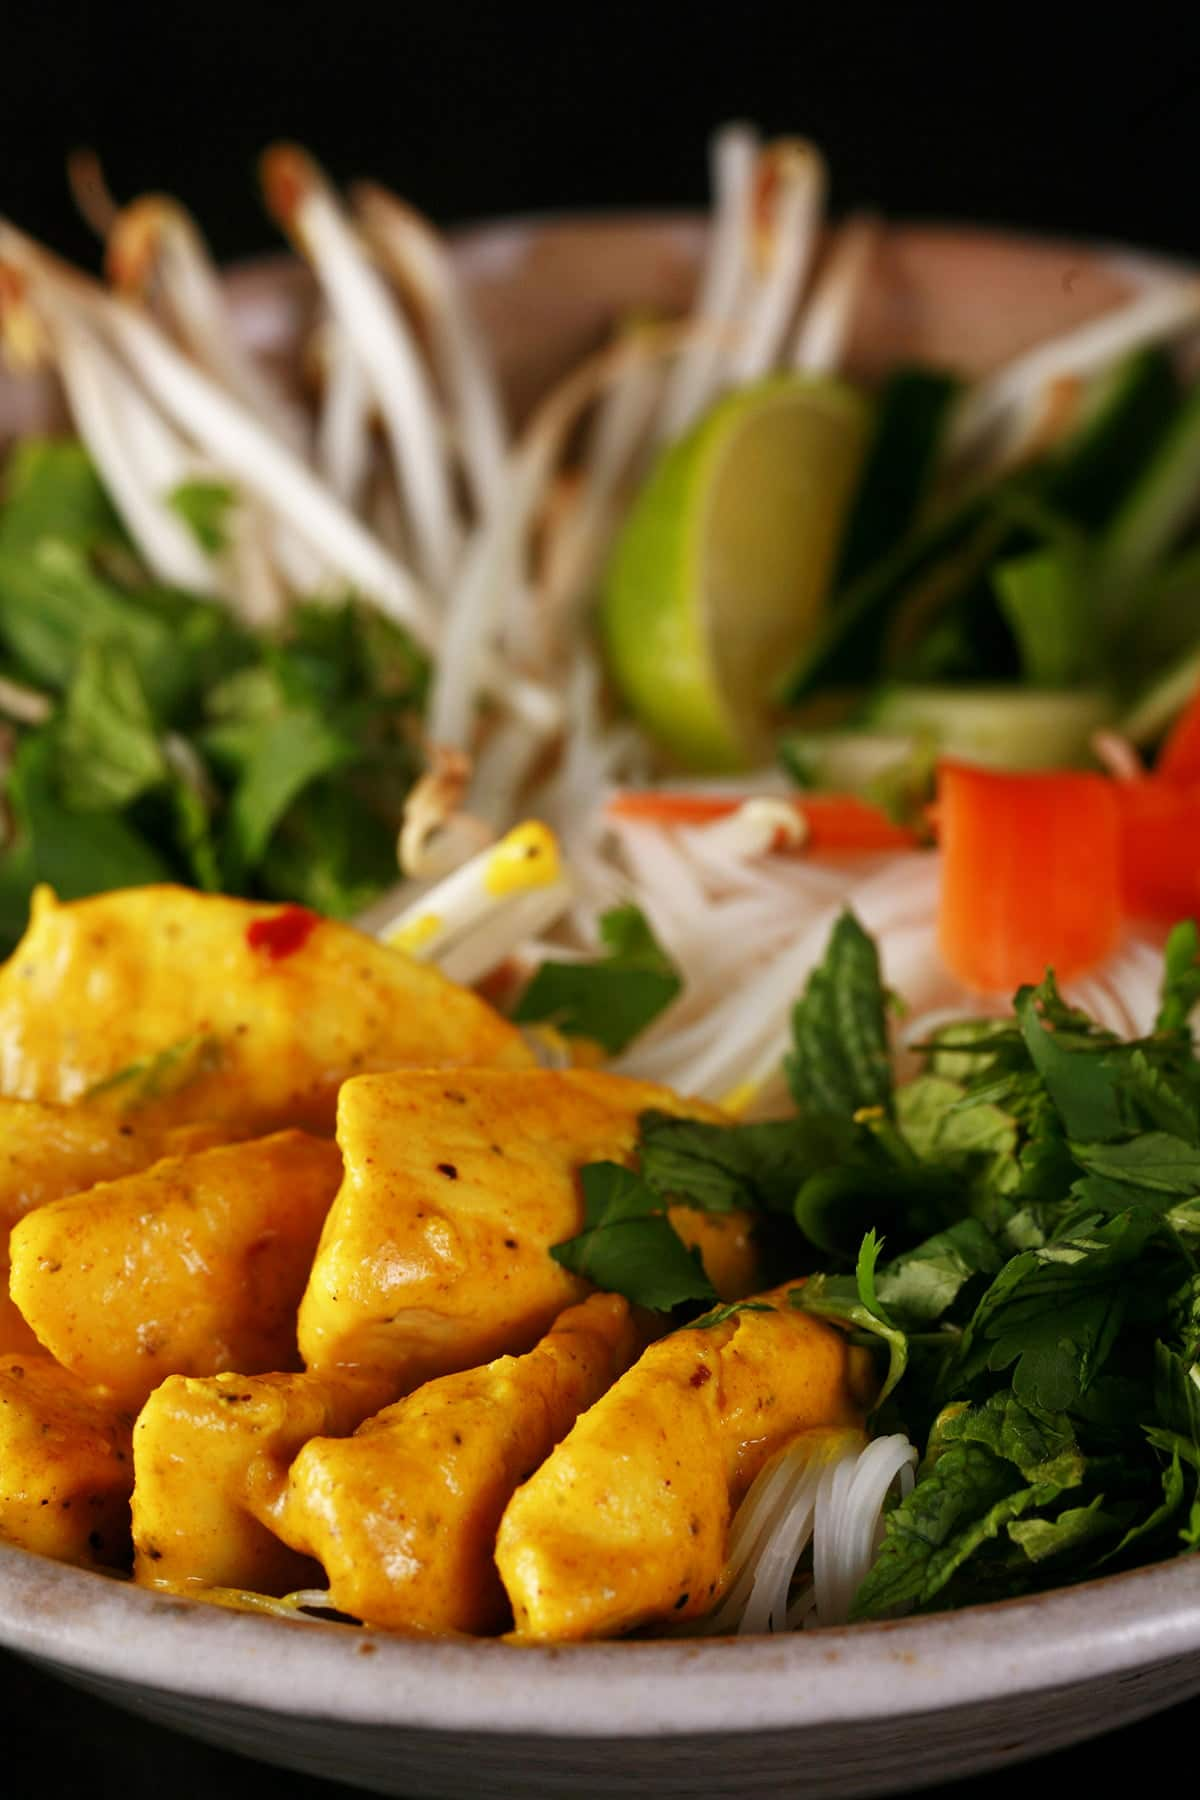 A close up view of a bowl of curried chicken Vietnamese noodle salad. Thin vermicelli noodles are visible under an arrangement of curred chicken pieces, cilantro and mint, carrot ribbons, bean sprouts, and lime wedges.